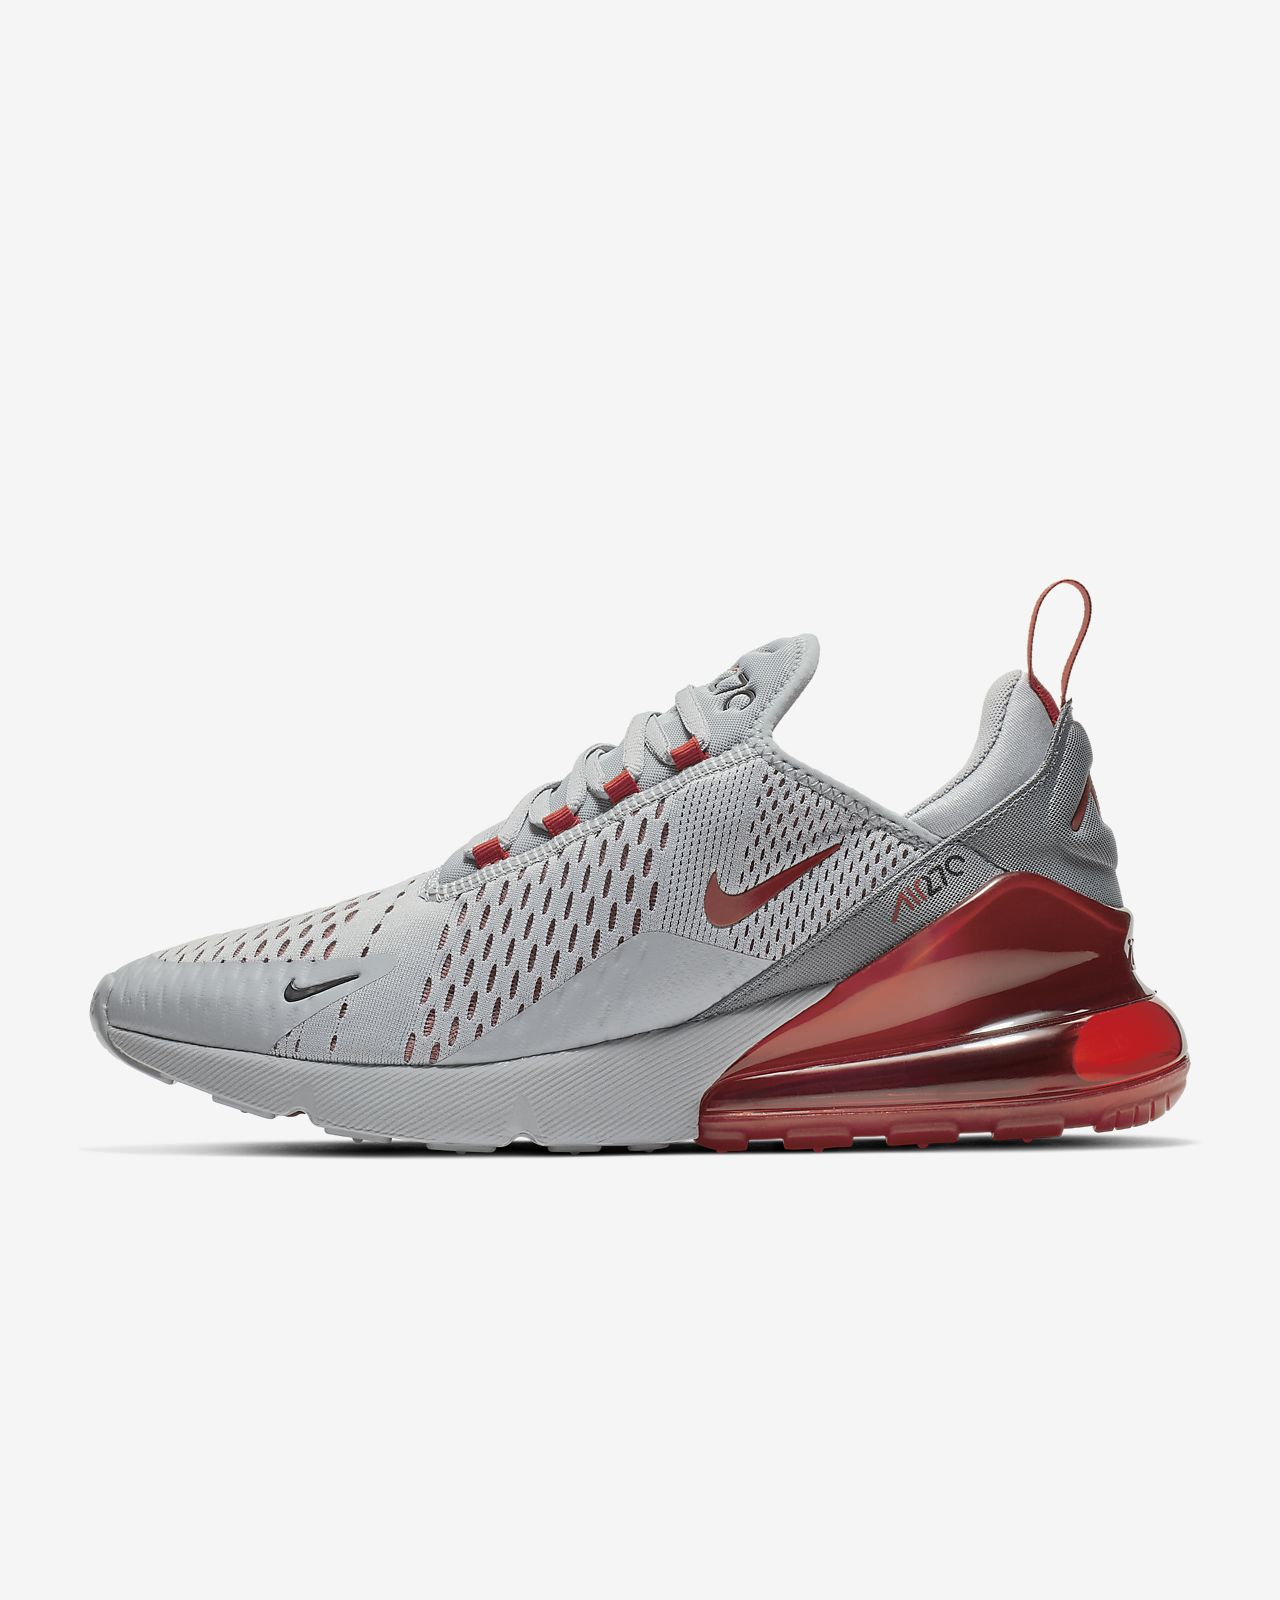 meet 97487 6d5ad Men s Shoe. Nike Air Max 270